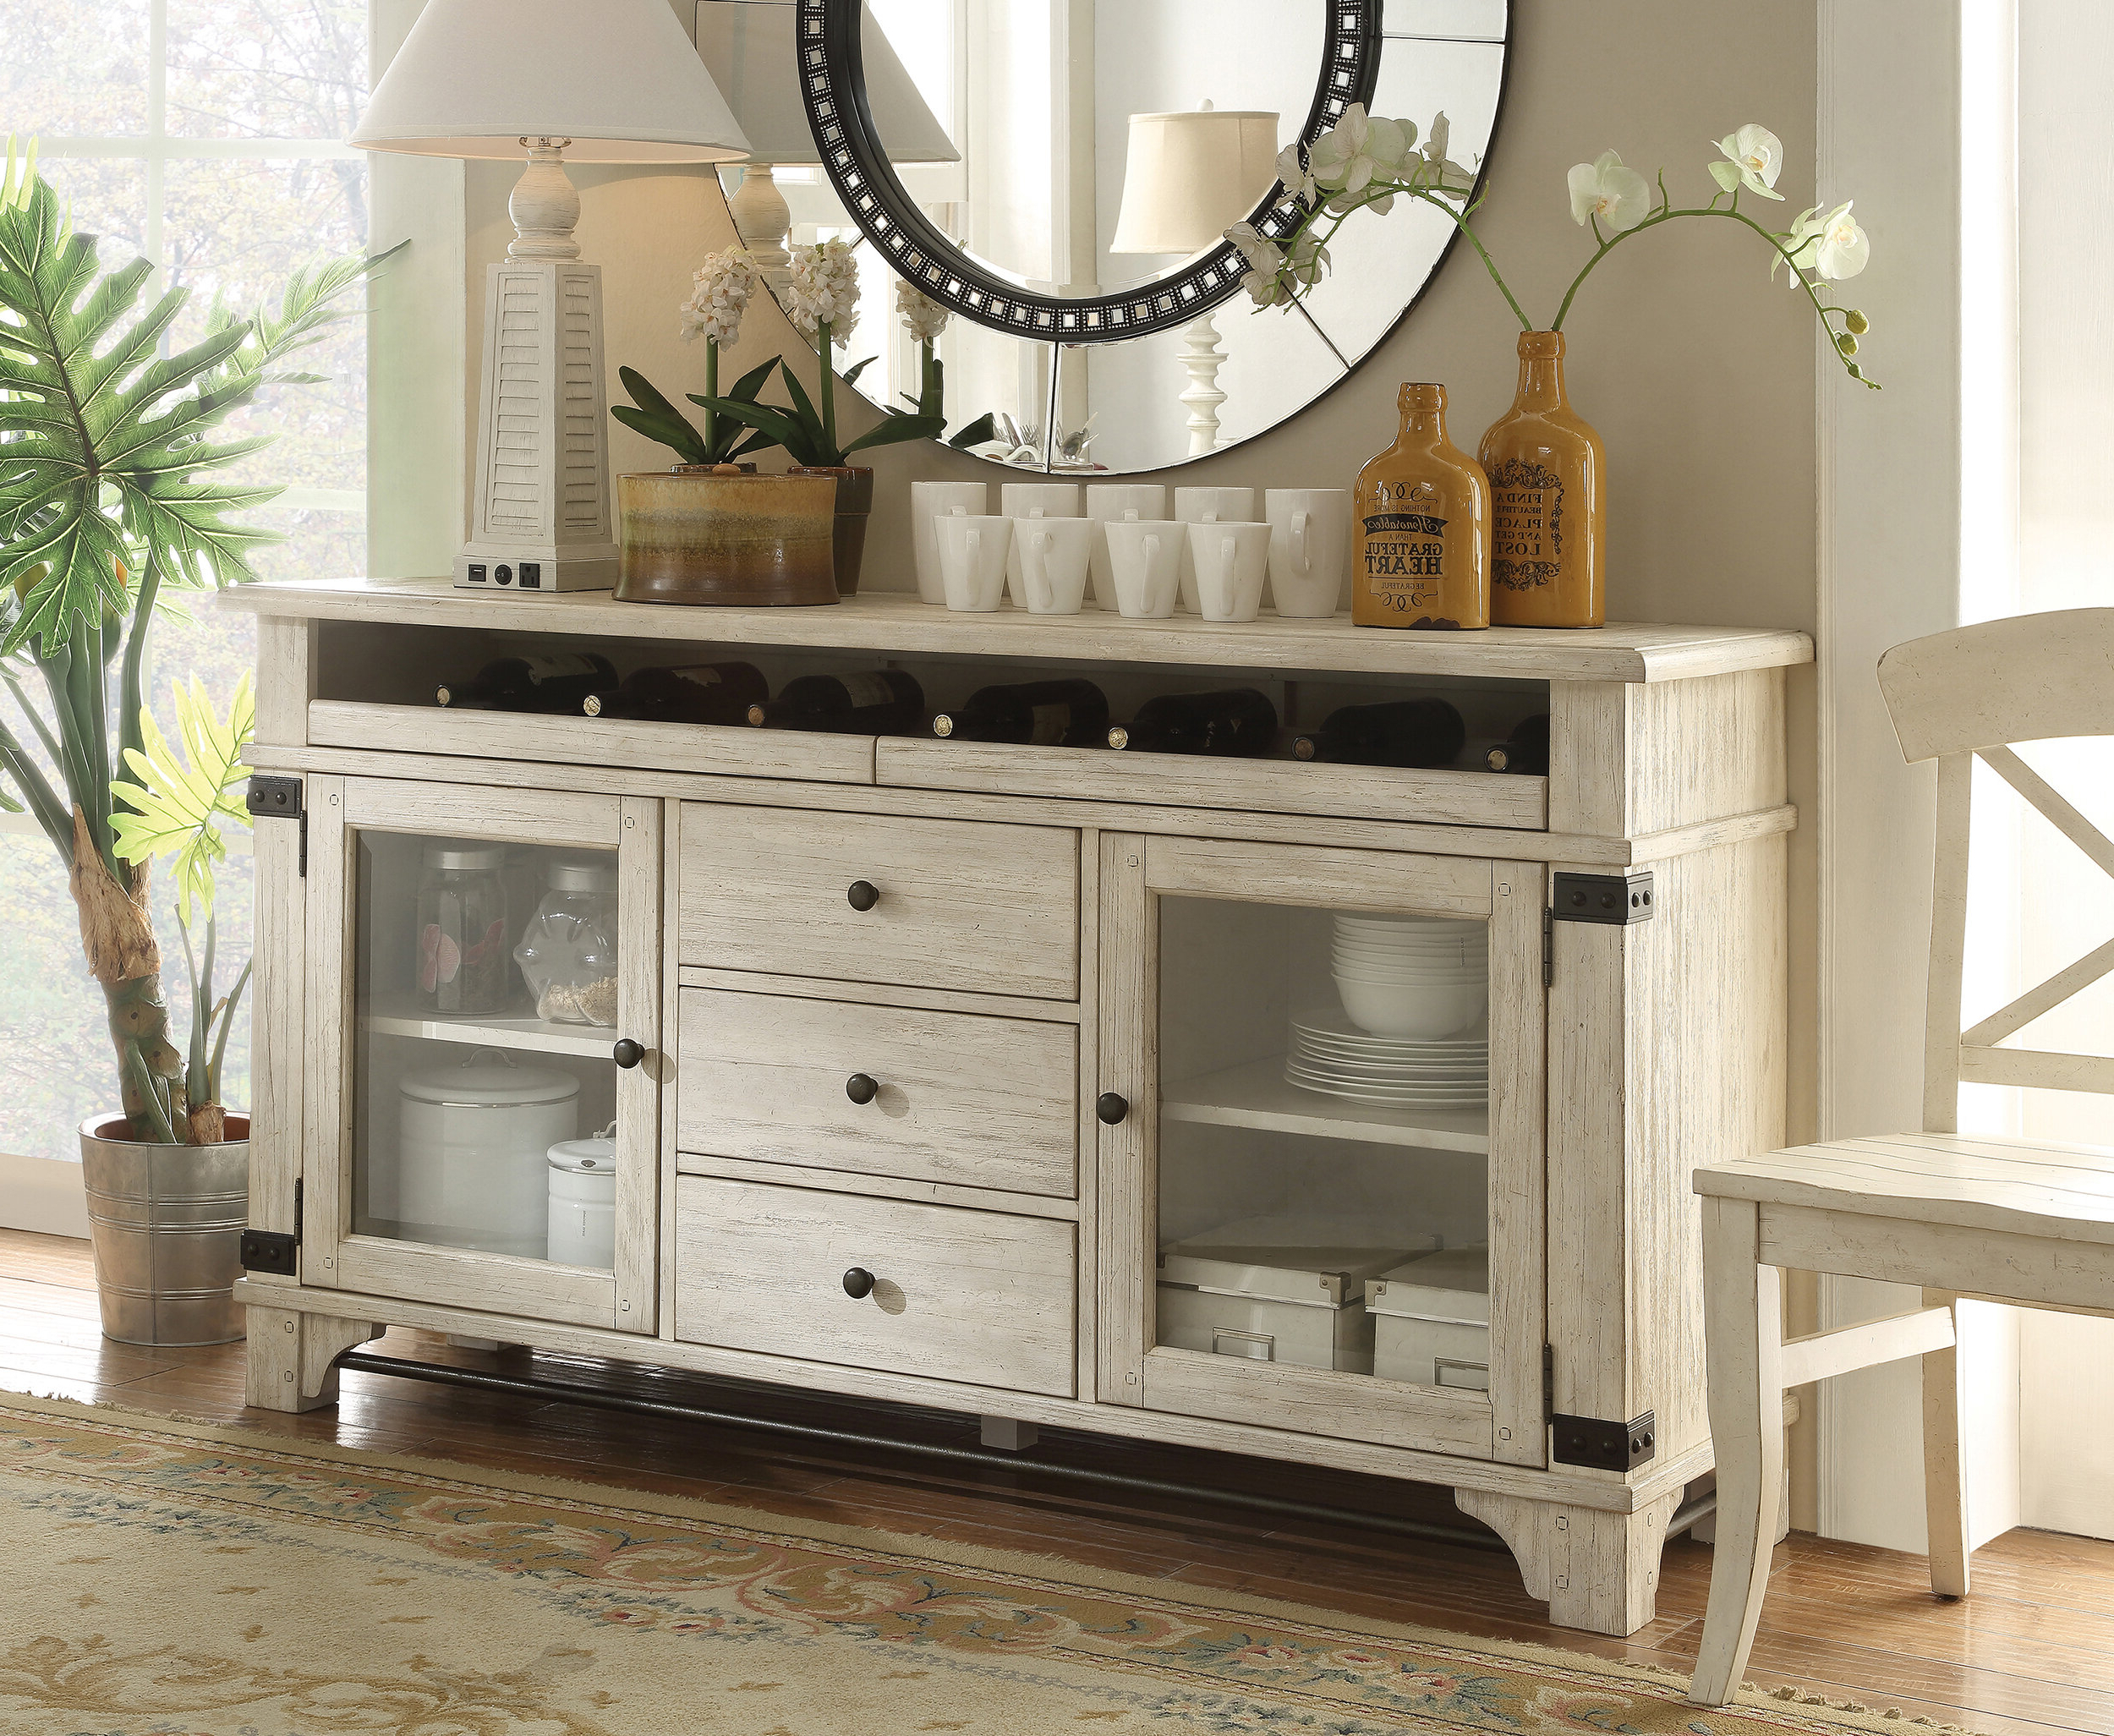 Most Popular Piedmont Charlisa Sideboard Pertaining To Chicoree Charlena Sideboards (Gallery 10 of 20)